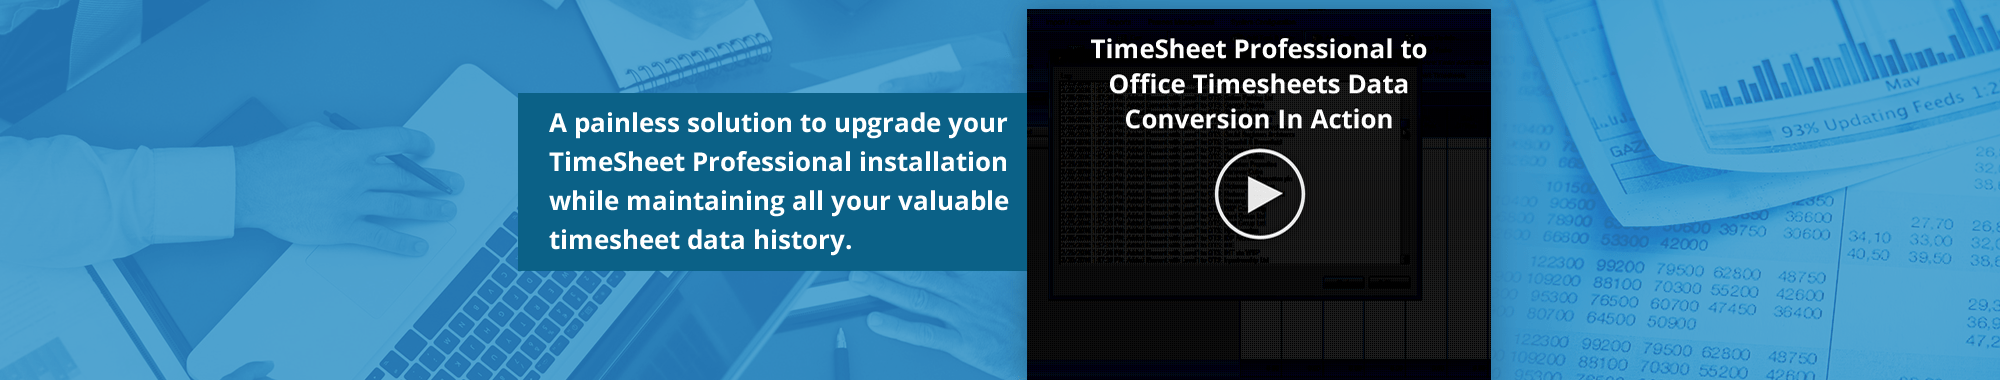 Insperity TimeSheet Professional to Office Timesheets Conversion